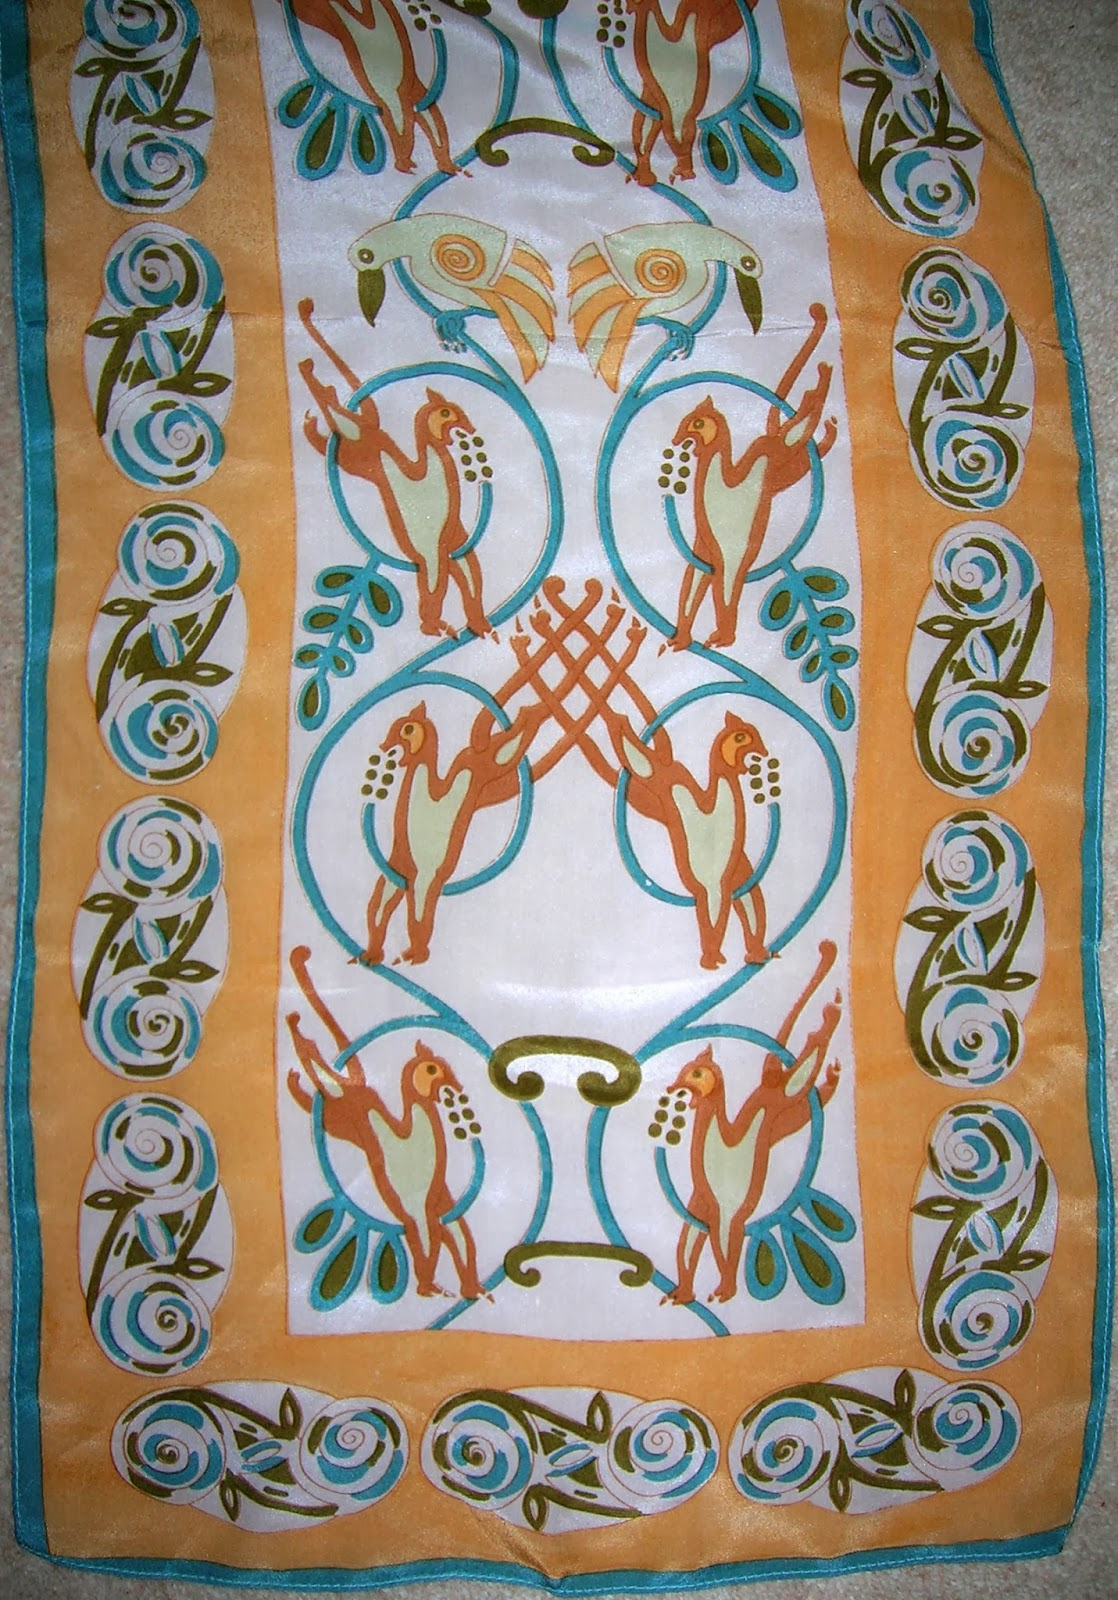 teal, butterscotch, orange and white celtic patterned scarf